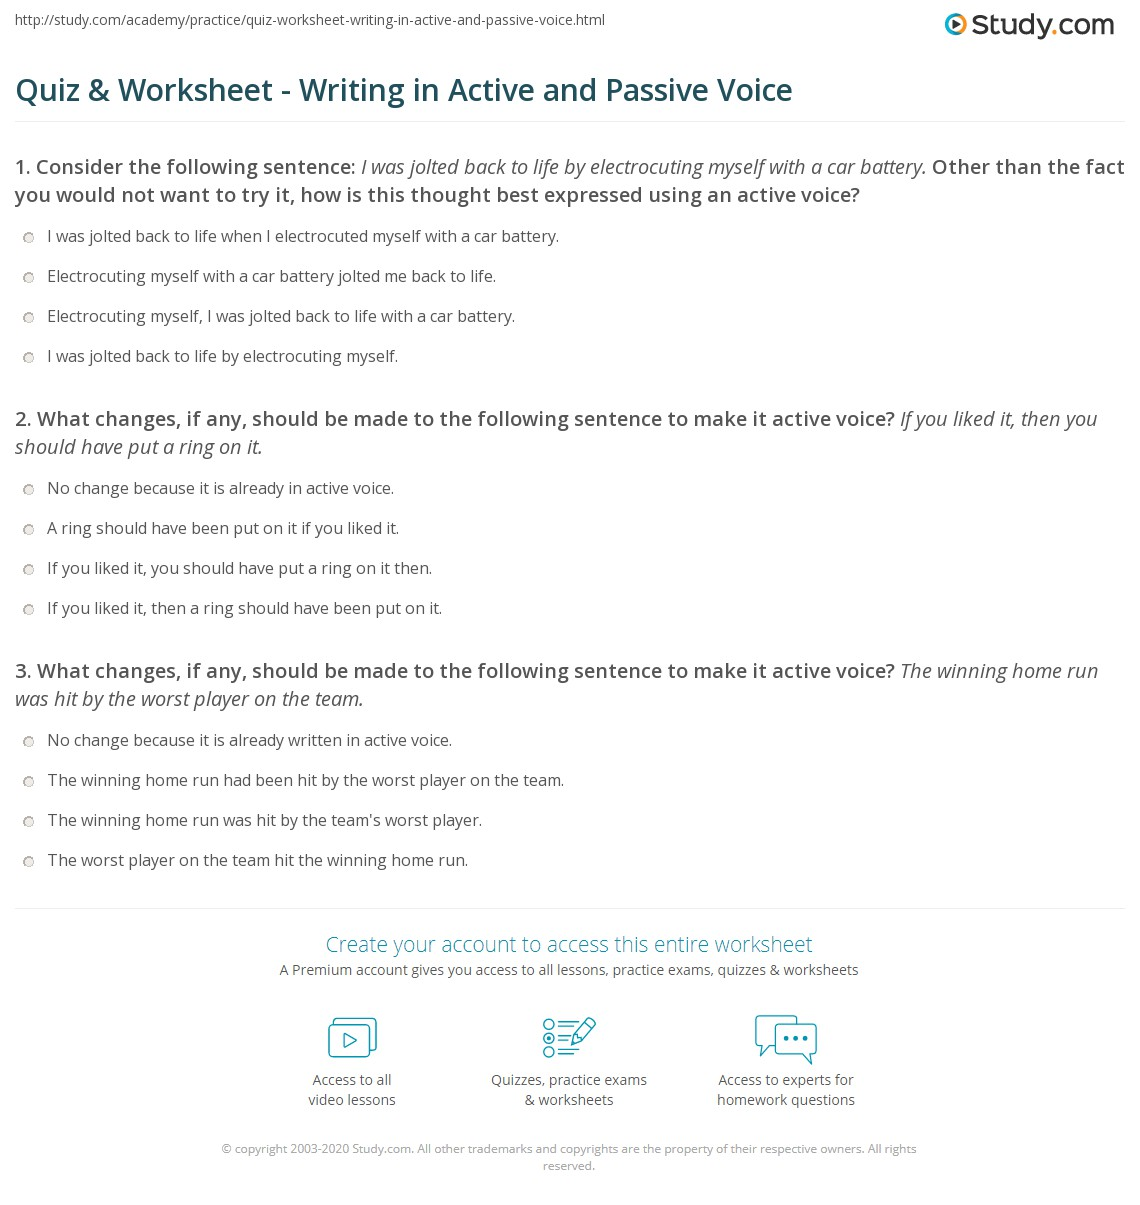 Quiz & Worksheet - Writing in Active and Passive Voice | Study.com